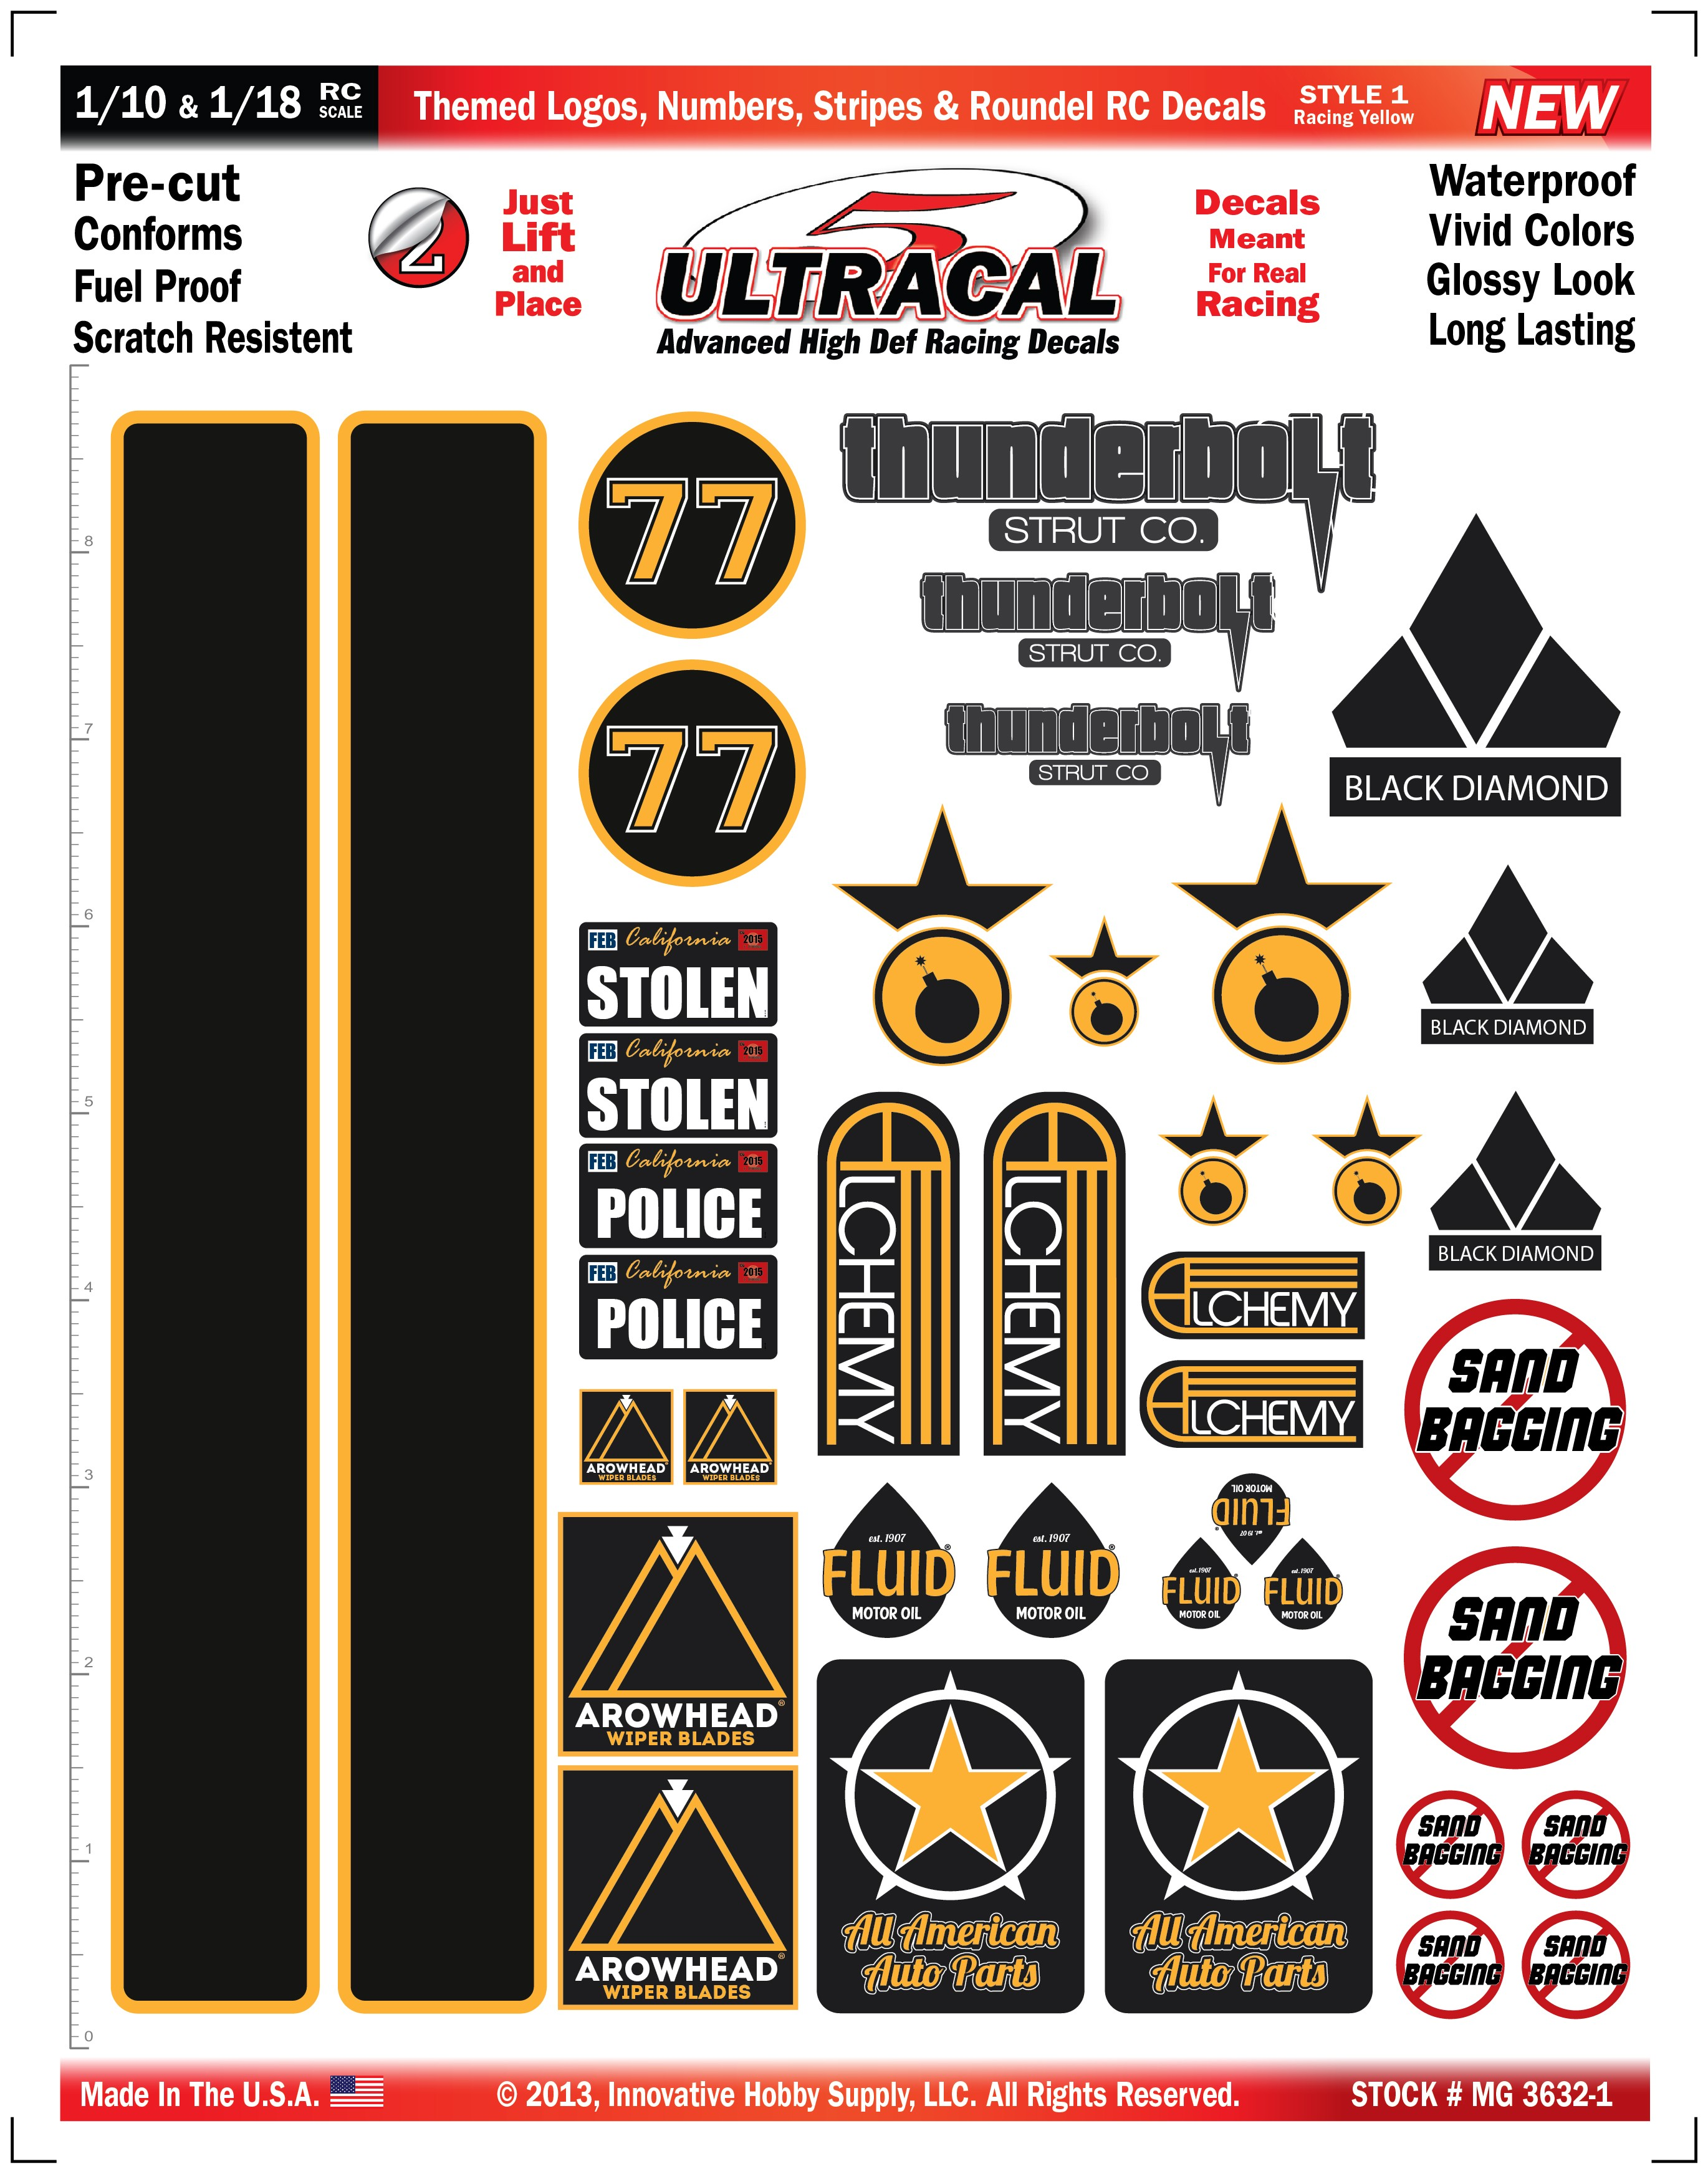 MG 3632-1 Ultracal Racing Yellow Themed Logos, Numbers, Stripes & Roundel RC Decals for 1:10 and 1:18 Scale